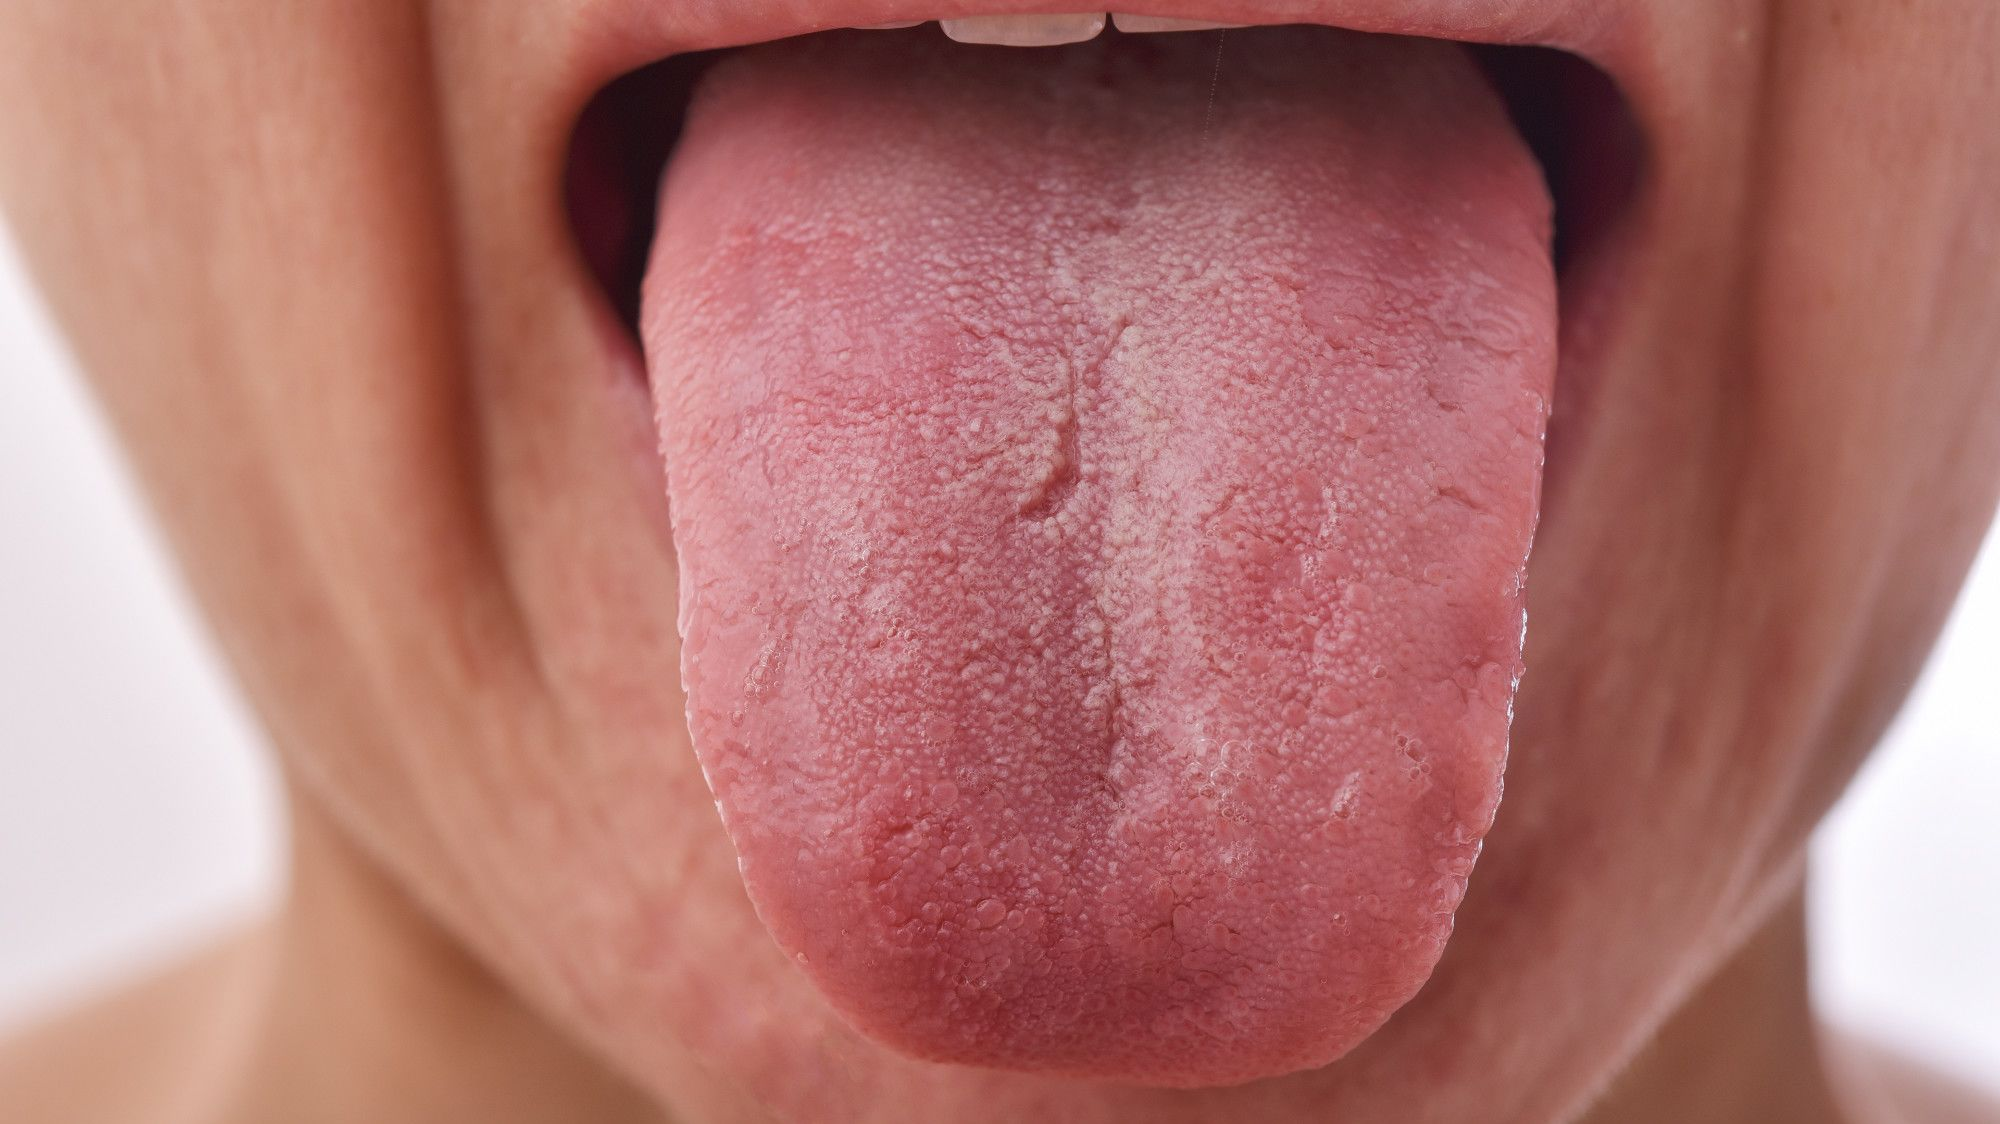 Why Your Tongue Has Cracks on It